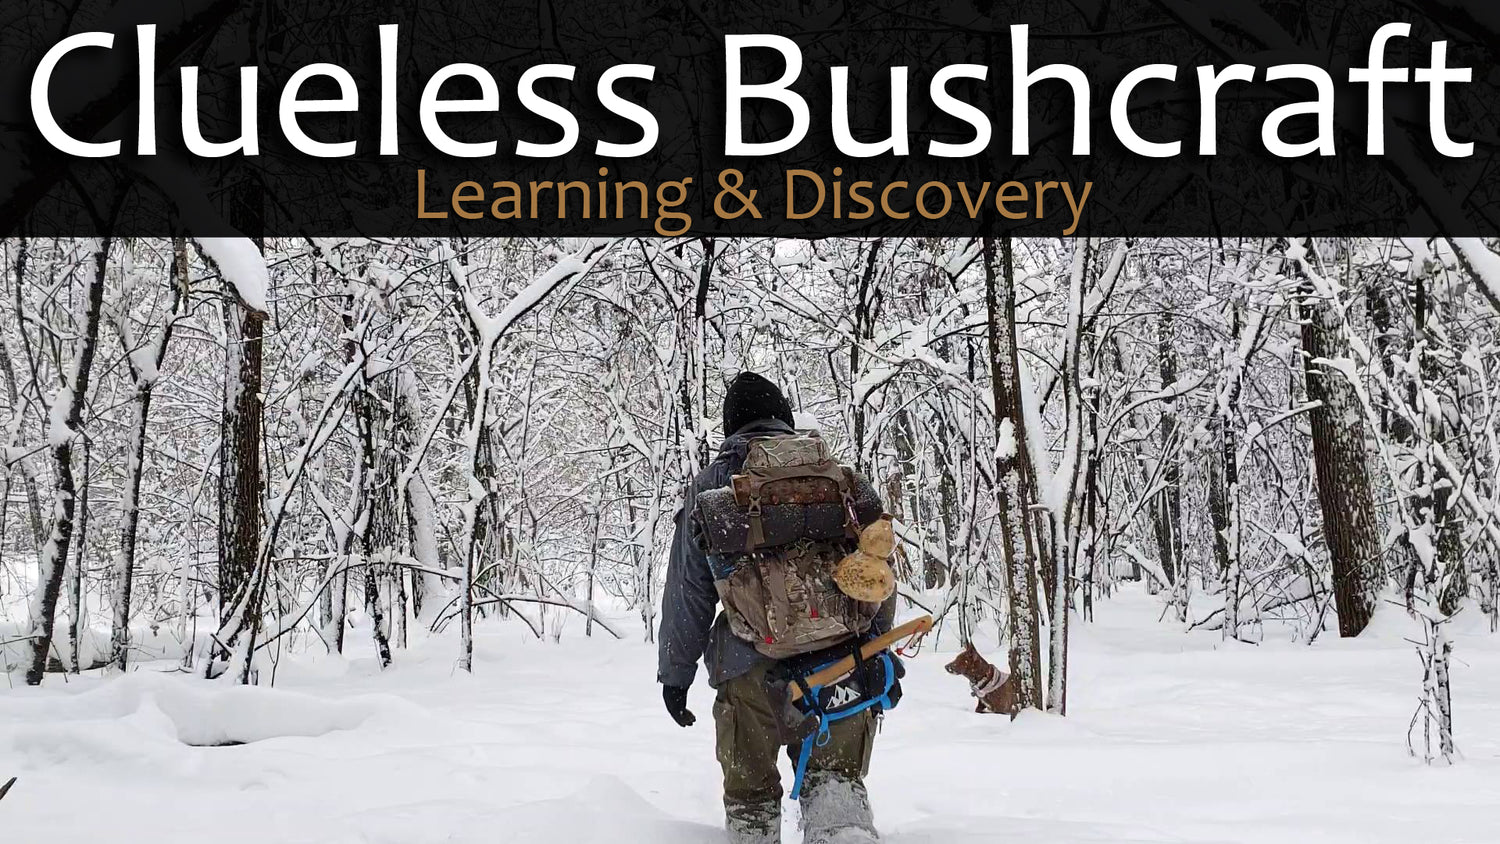 Clueless Bushcraft